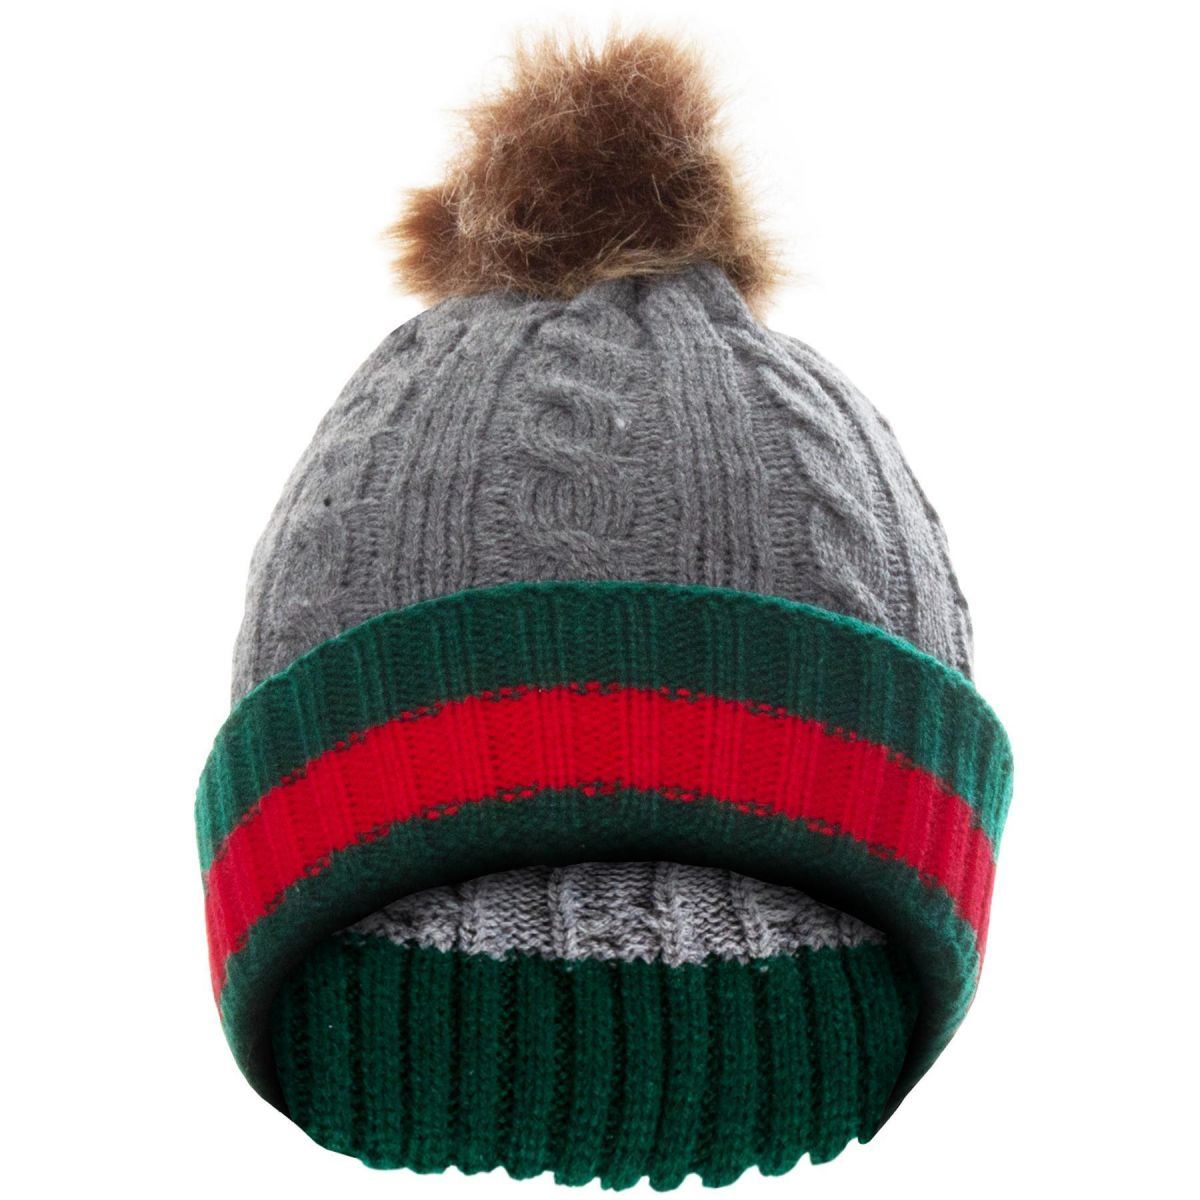 Accessories | Mens Winter Knitted Striped Beanie, From £4.99, Guest Brand, in  | Raw Denim Outlet